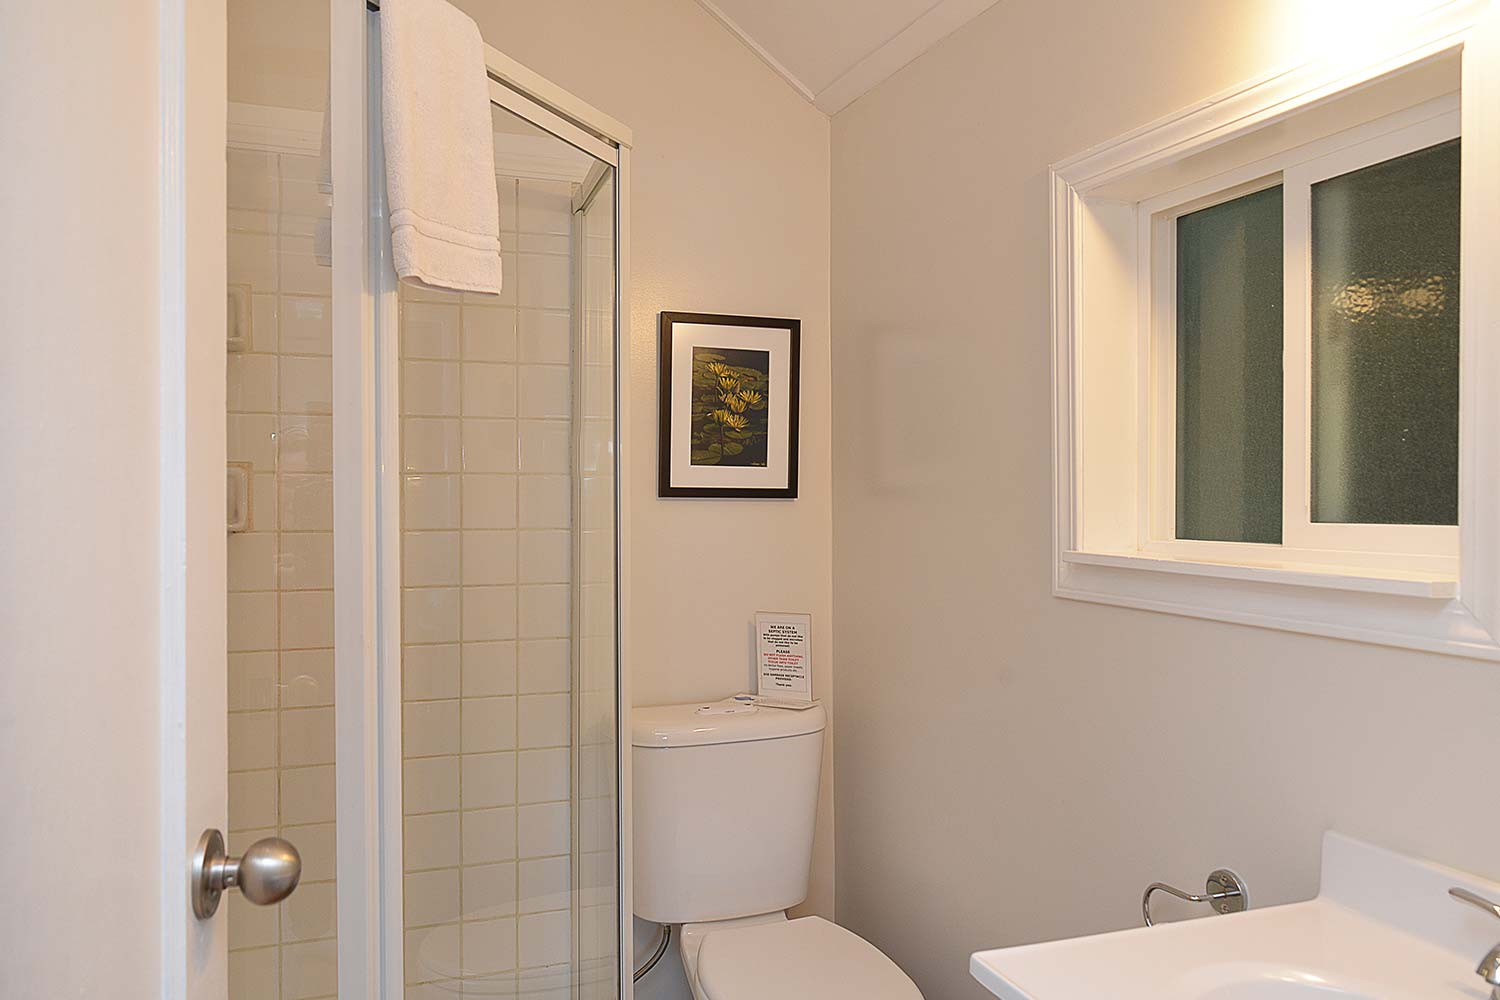 The toilet and shower in the bathroom of Prawn Palace. A Sunshine Coast, British Columbia vacation rental cottage.